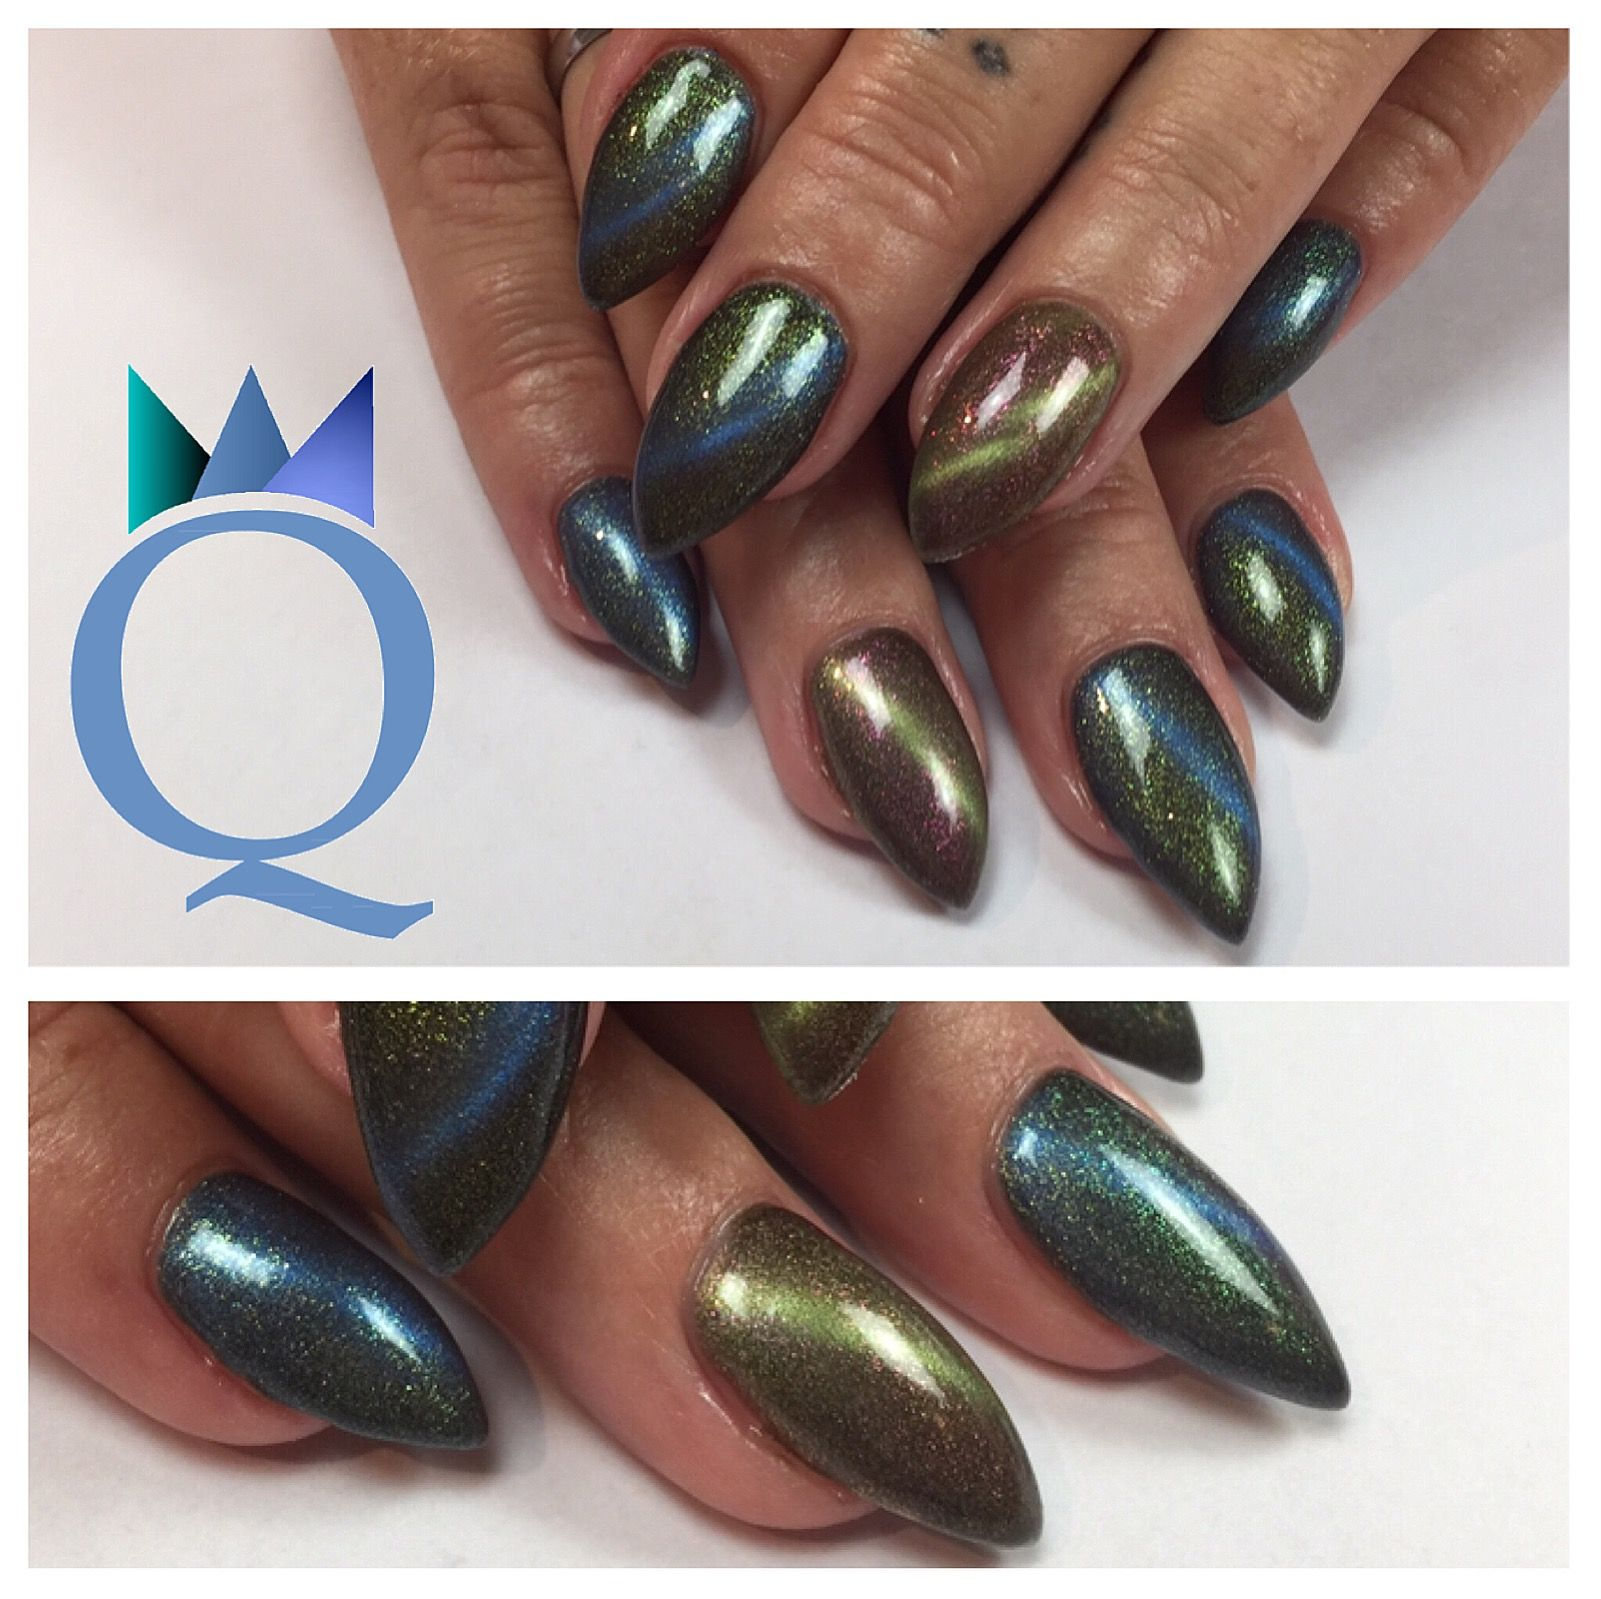 Stilettonails Gelnails Nails Blue Green Cateye Stilettos